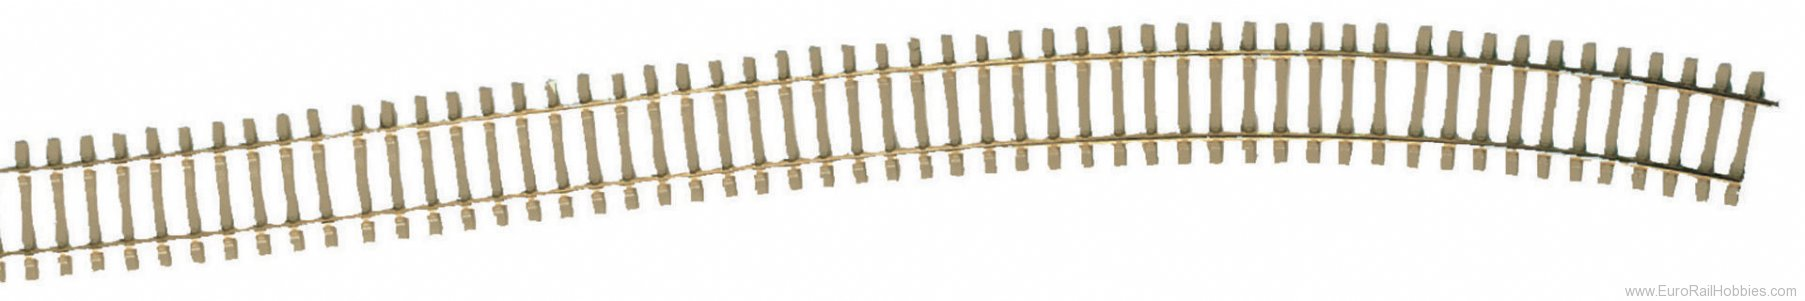 Roco 42401 H0/83 Flextrack with Concrete Ties (1)